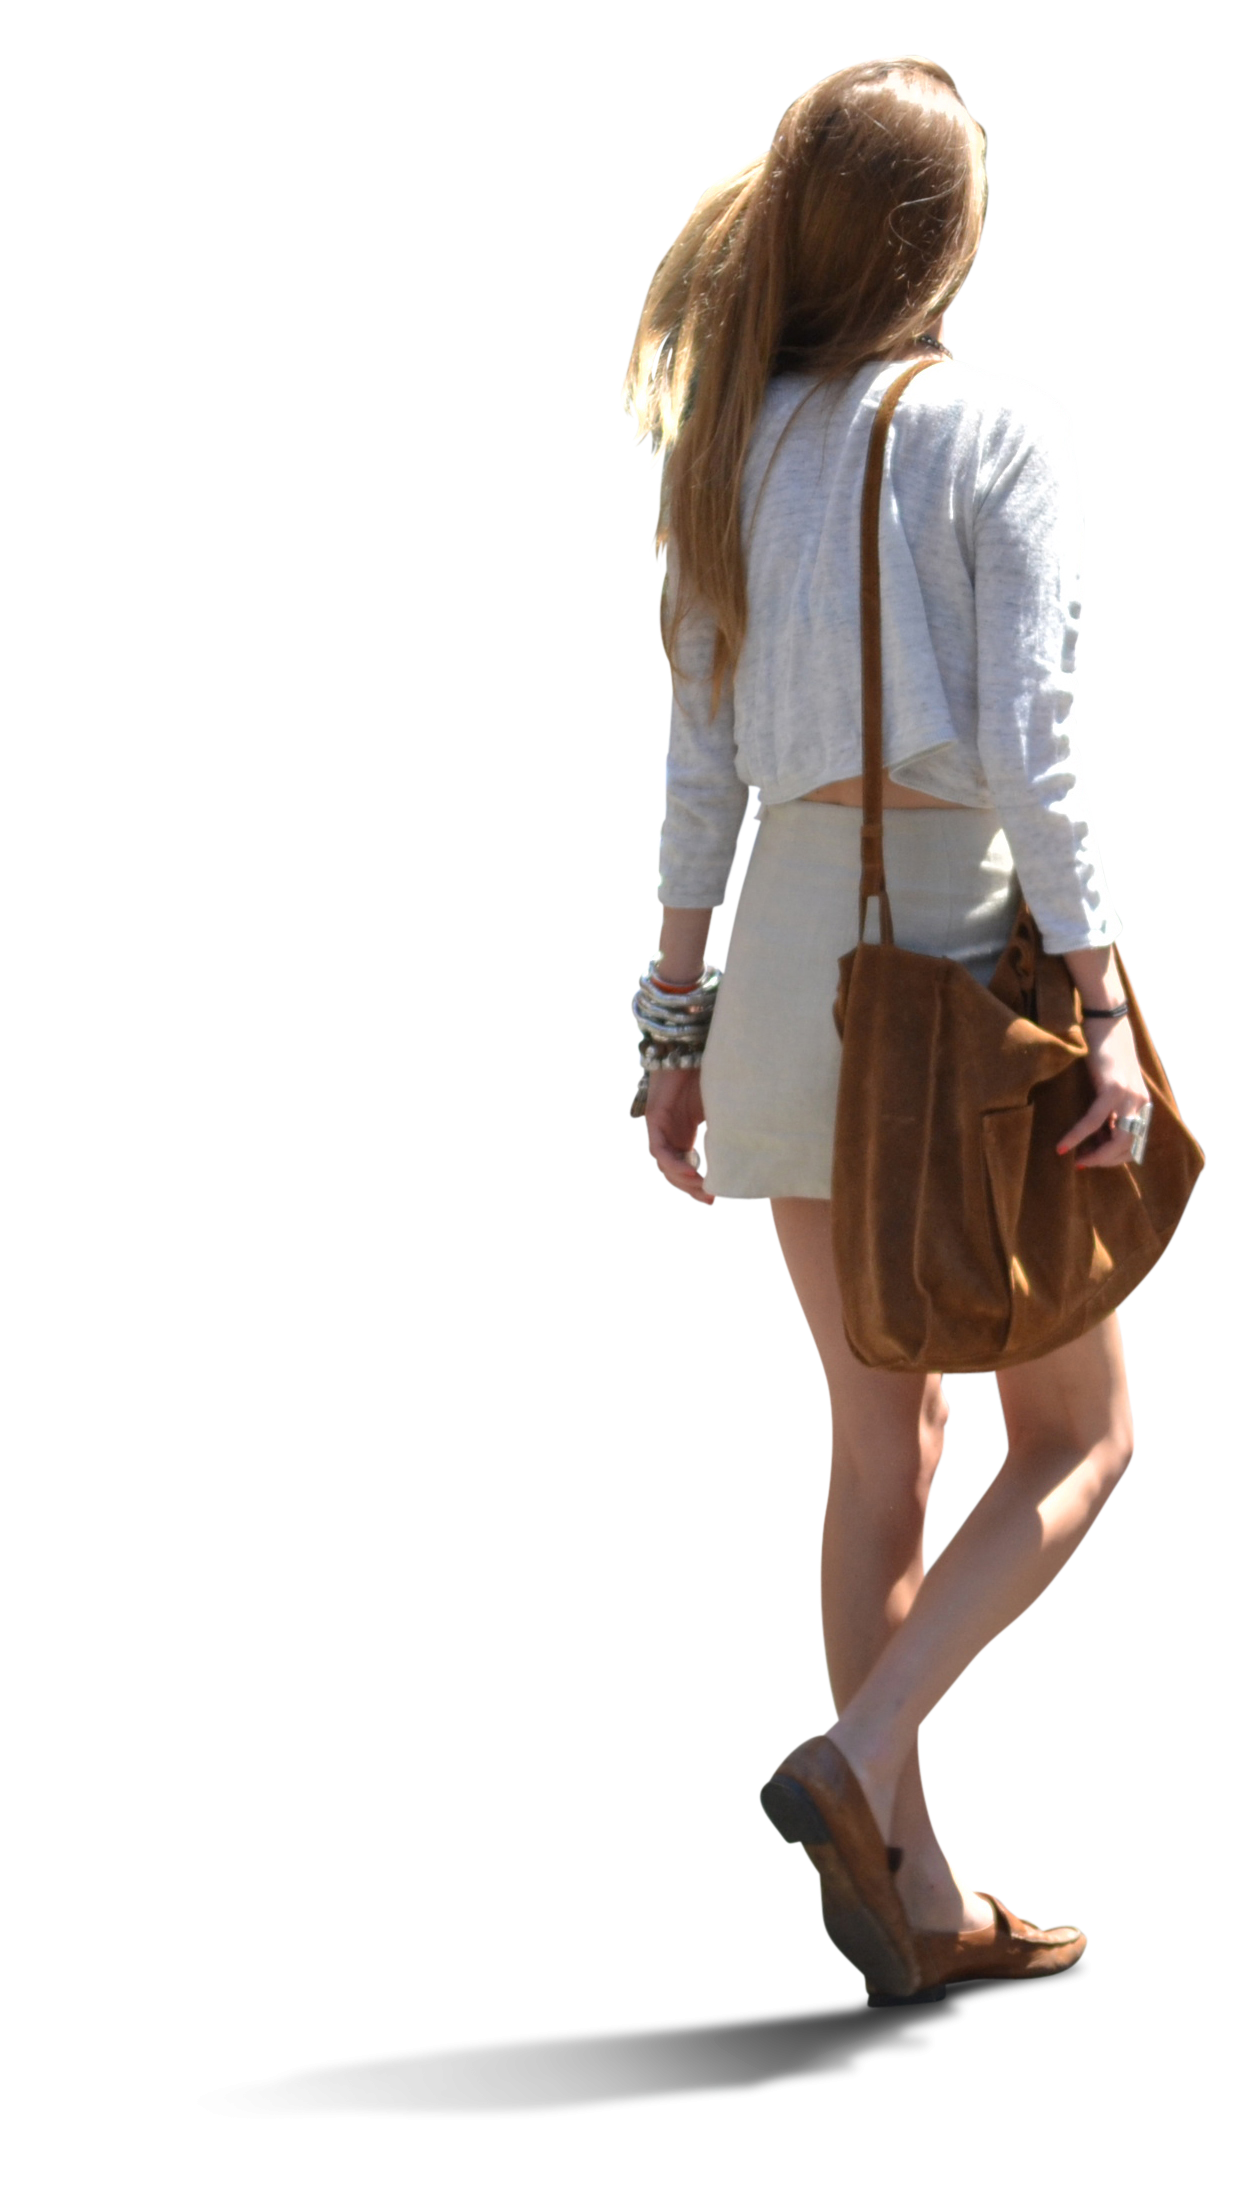 Summer people png. Business woman walking save